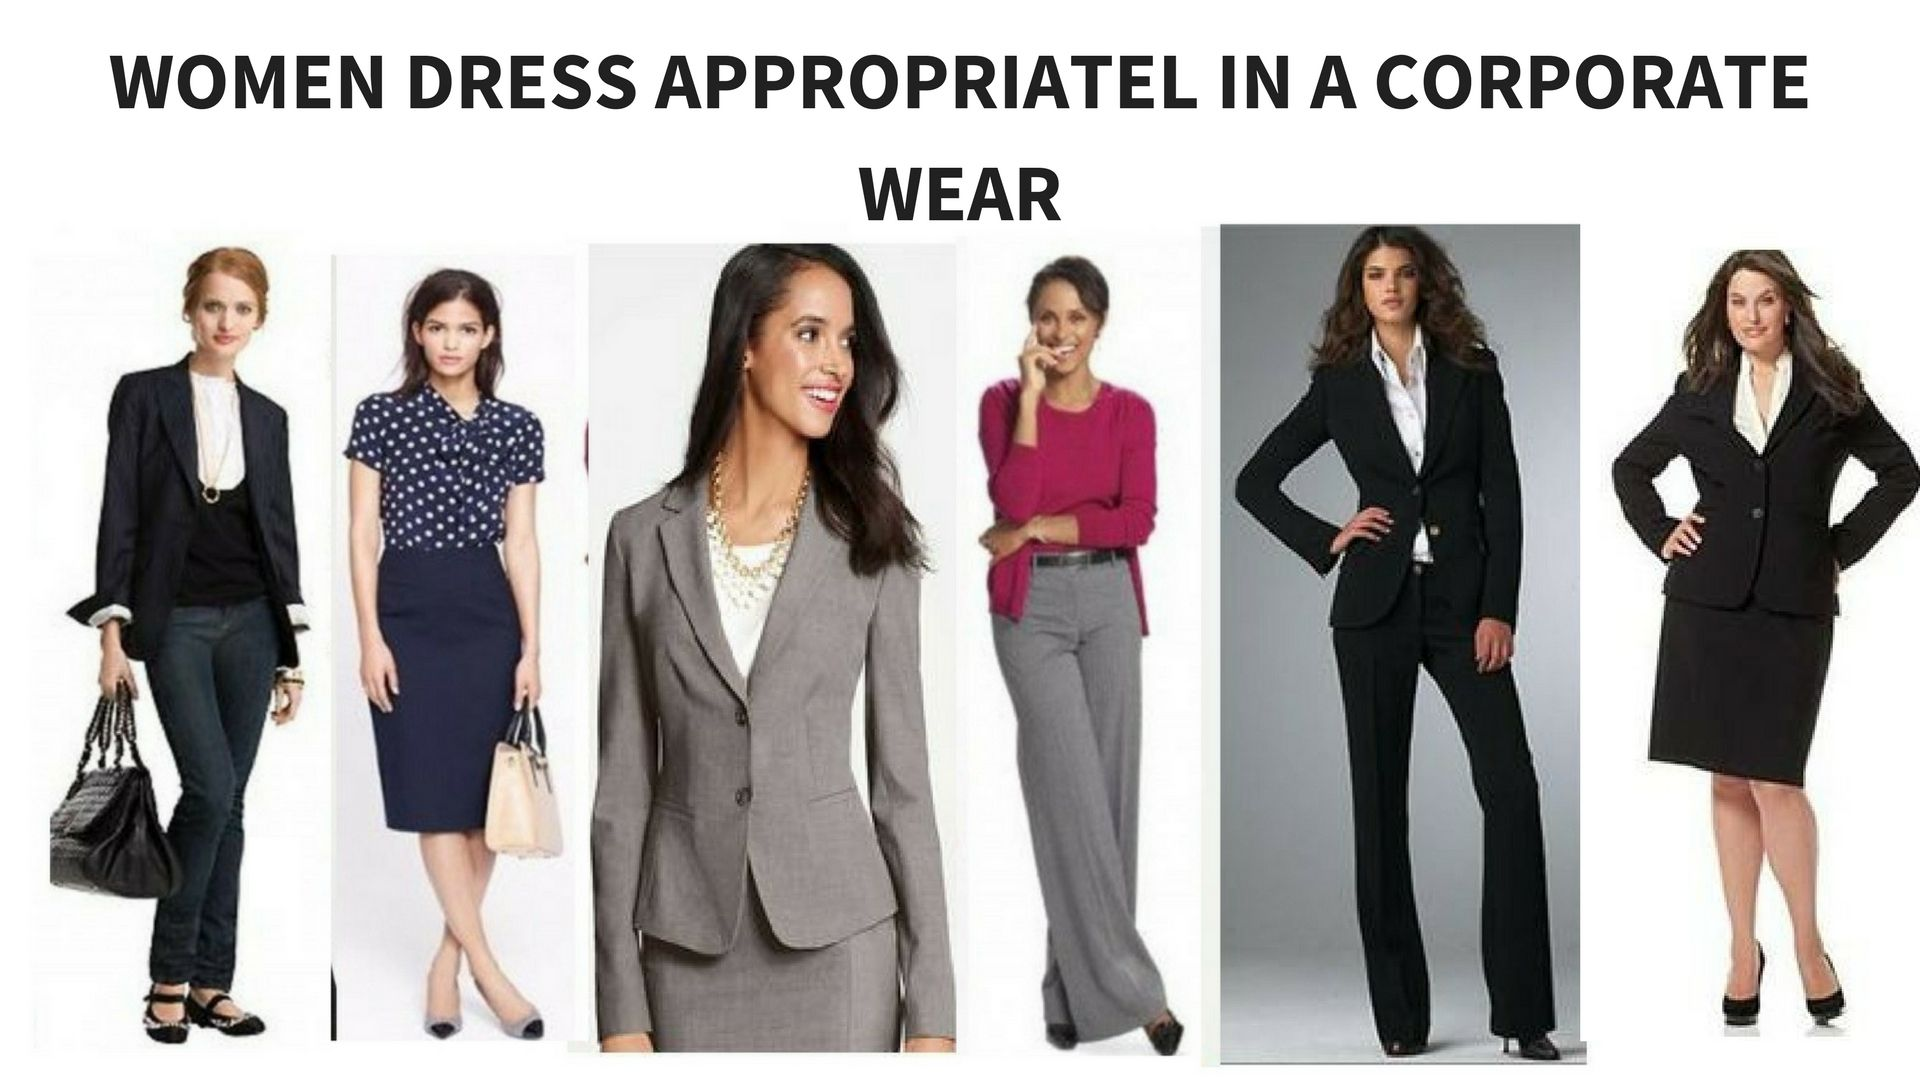 Corporate Wear and Safety in the Work Place